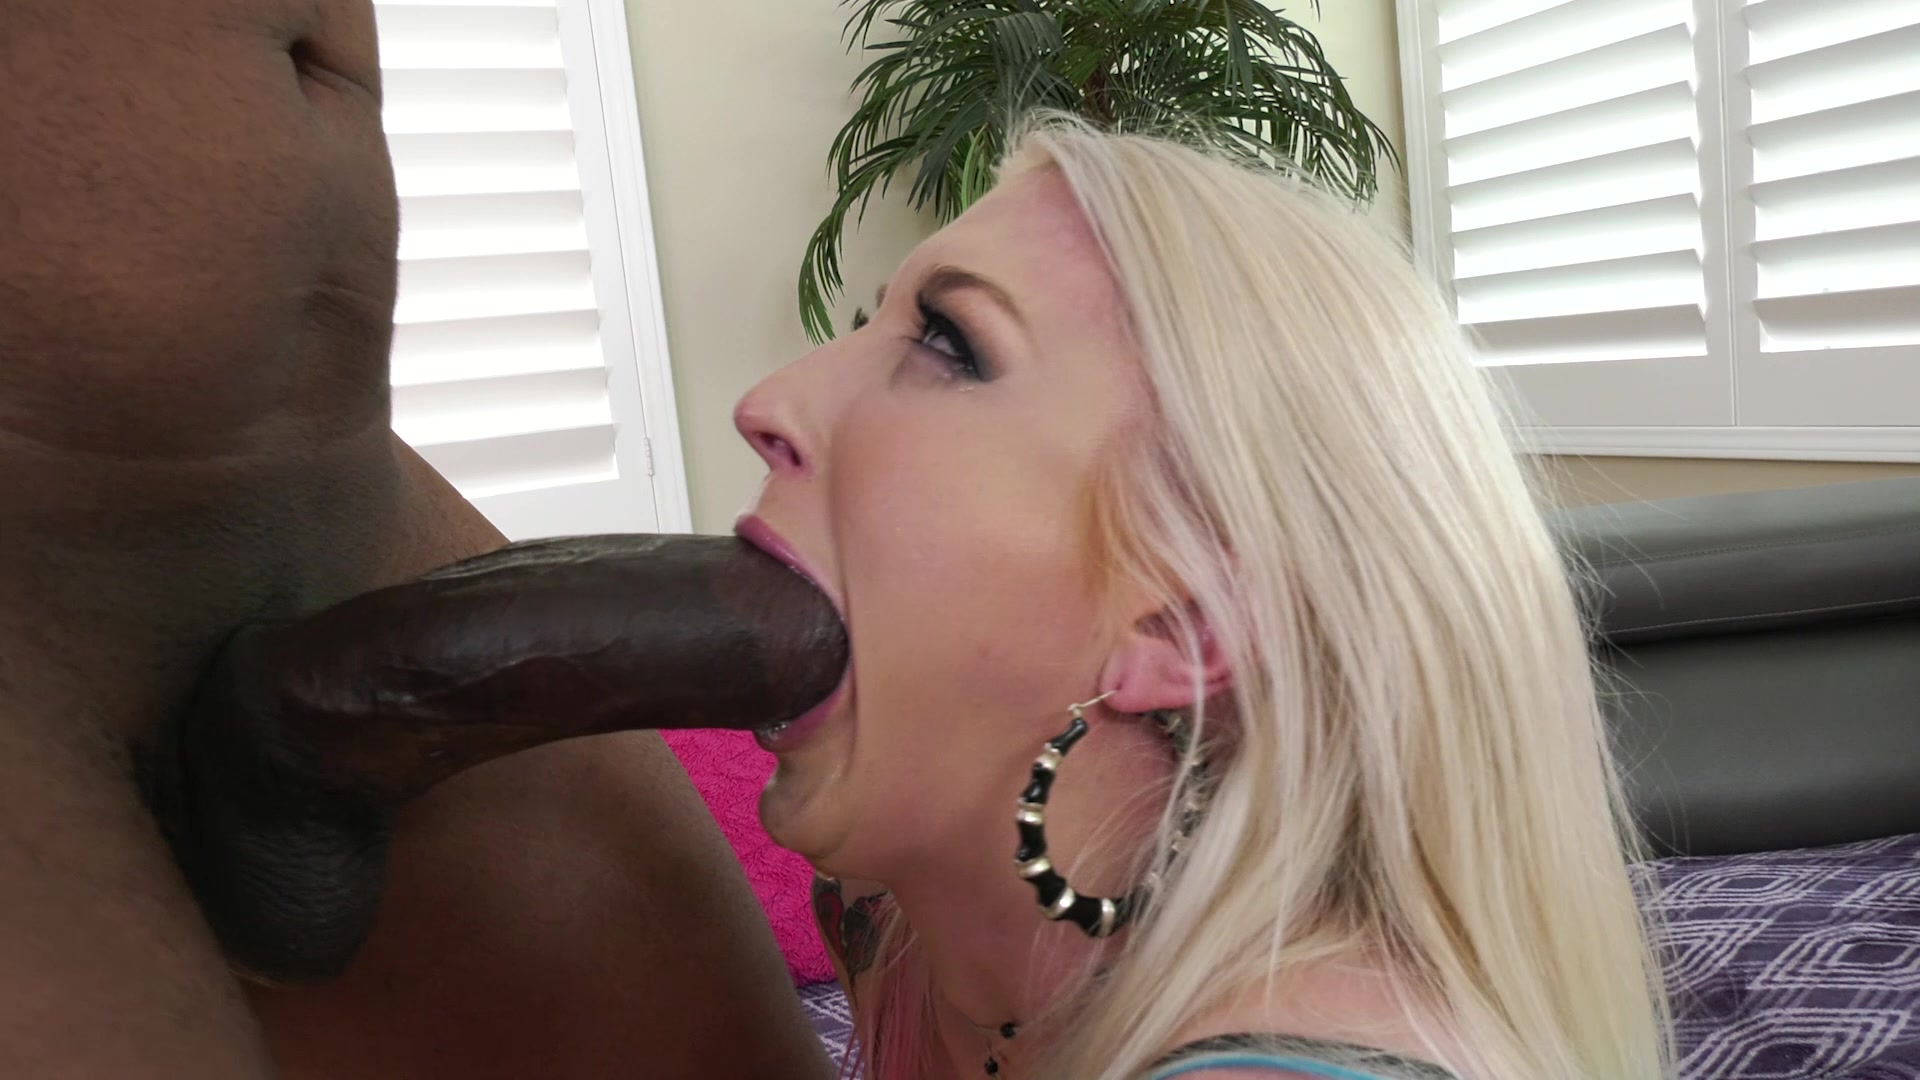 Girlfriend fucks boyfriend with dildo